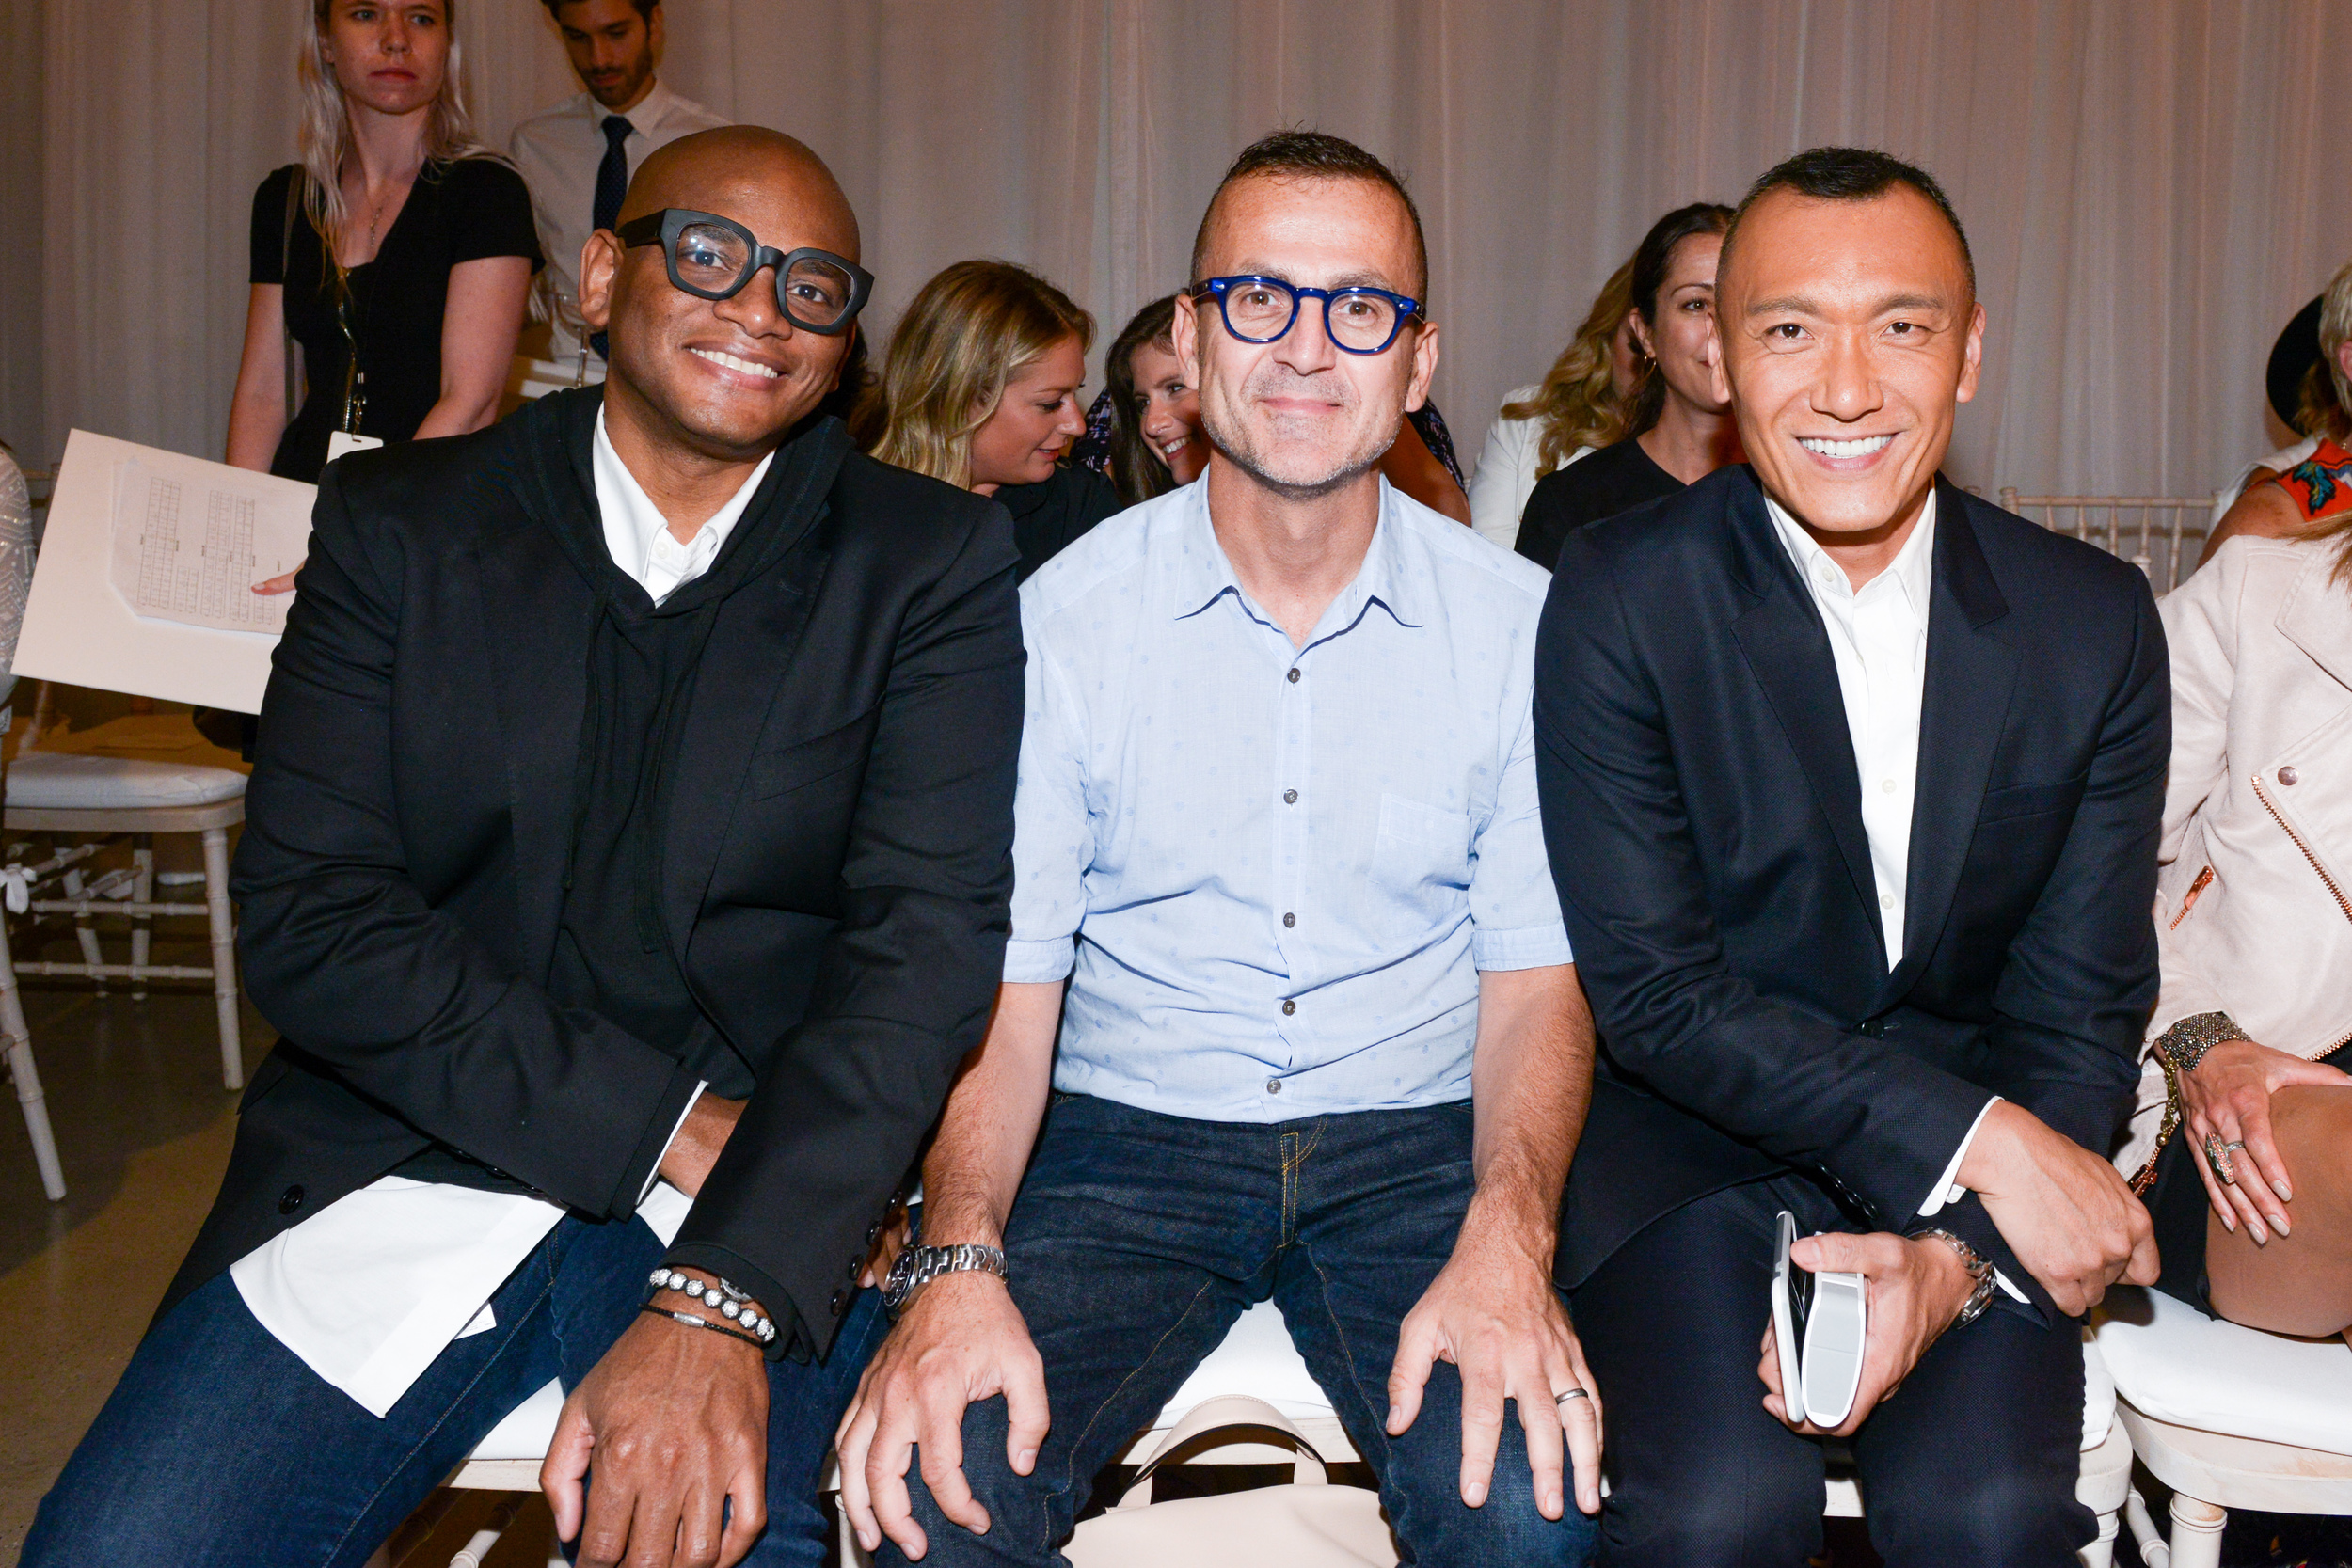 Arthur Lewis, Steven Kolb (CFDA President), and Joe Zee (Editor-in-Chief of Yahoo Style) at the LC Lauren Conrad Runway Collection for Kohl's NYFW Show. Photography by Zach Hyman of Billy Farrell Agency.